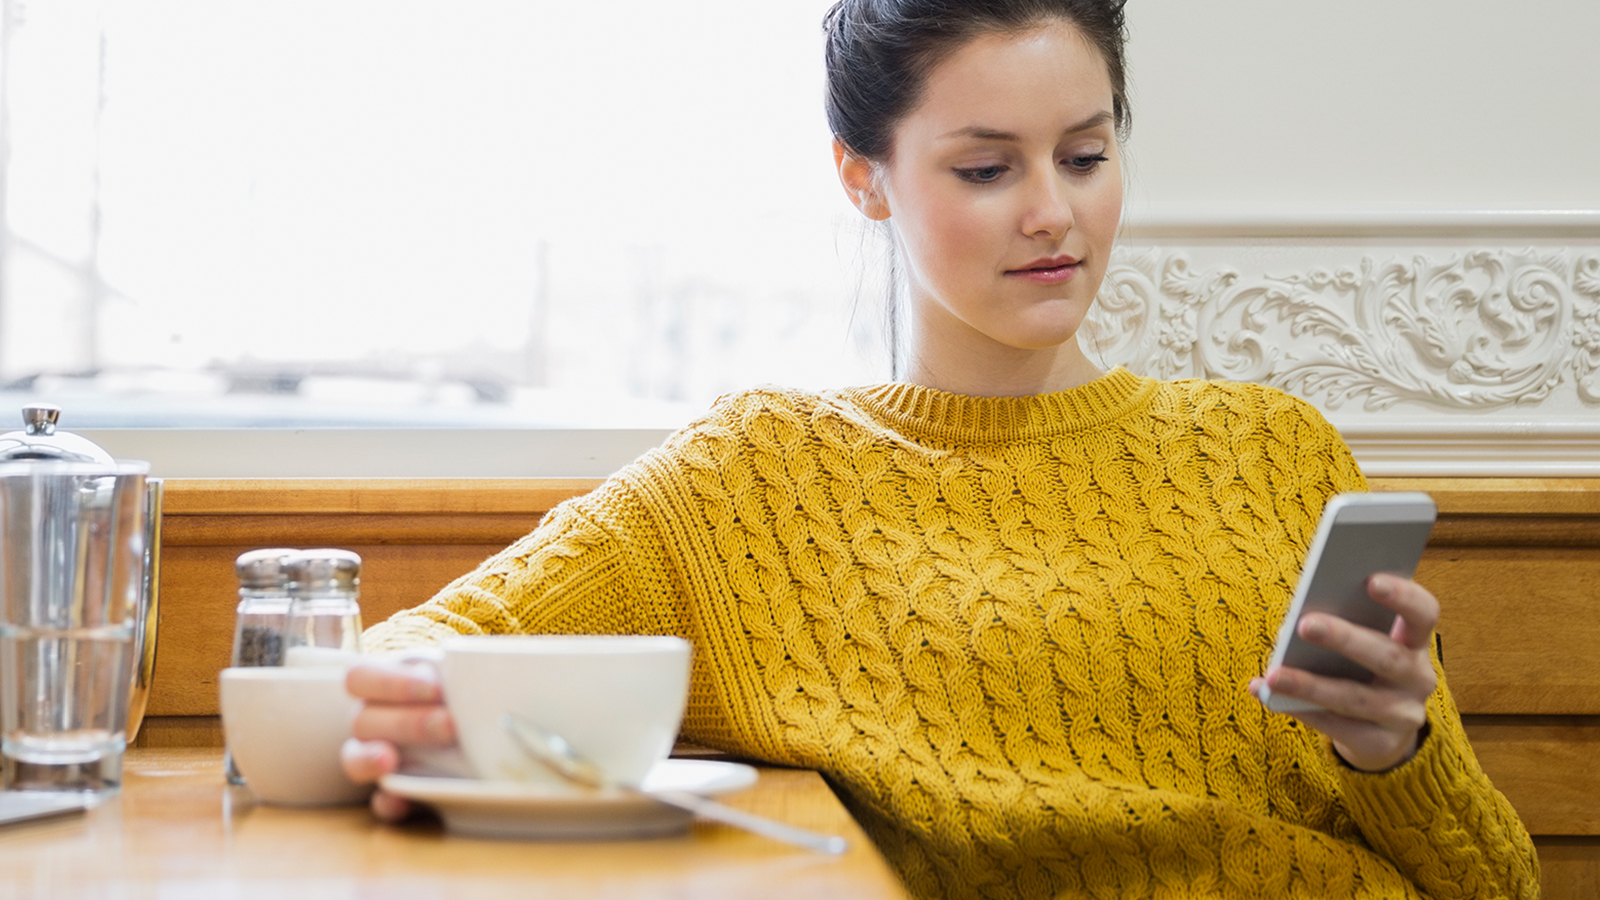 A woman sitting in a cafe holding a cup in right hand and viewing a mobile phone held in her left hand.